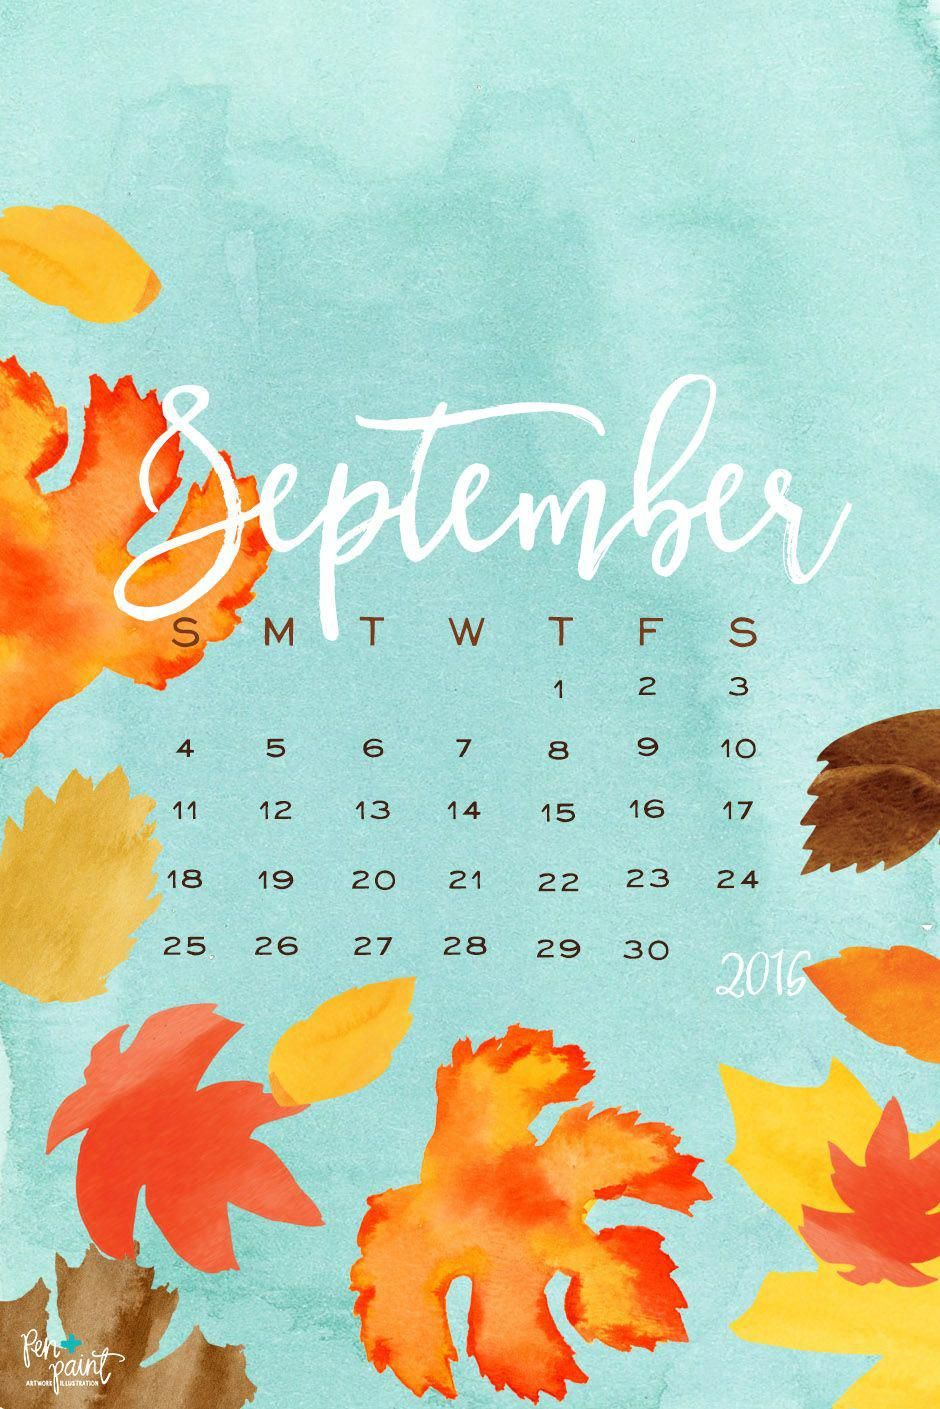 Hello September! I'm not going to lie, I have been anxiously awaiting this month and the arrival of Fall. I'm ready for cooler temps, a trip to the pumpkin patch, and of course bright beautiful leaves. This month's free desktop background and wallpaper are inspired by all those beautiful F #helloseptember